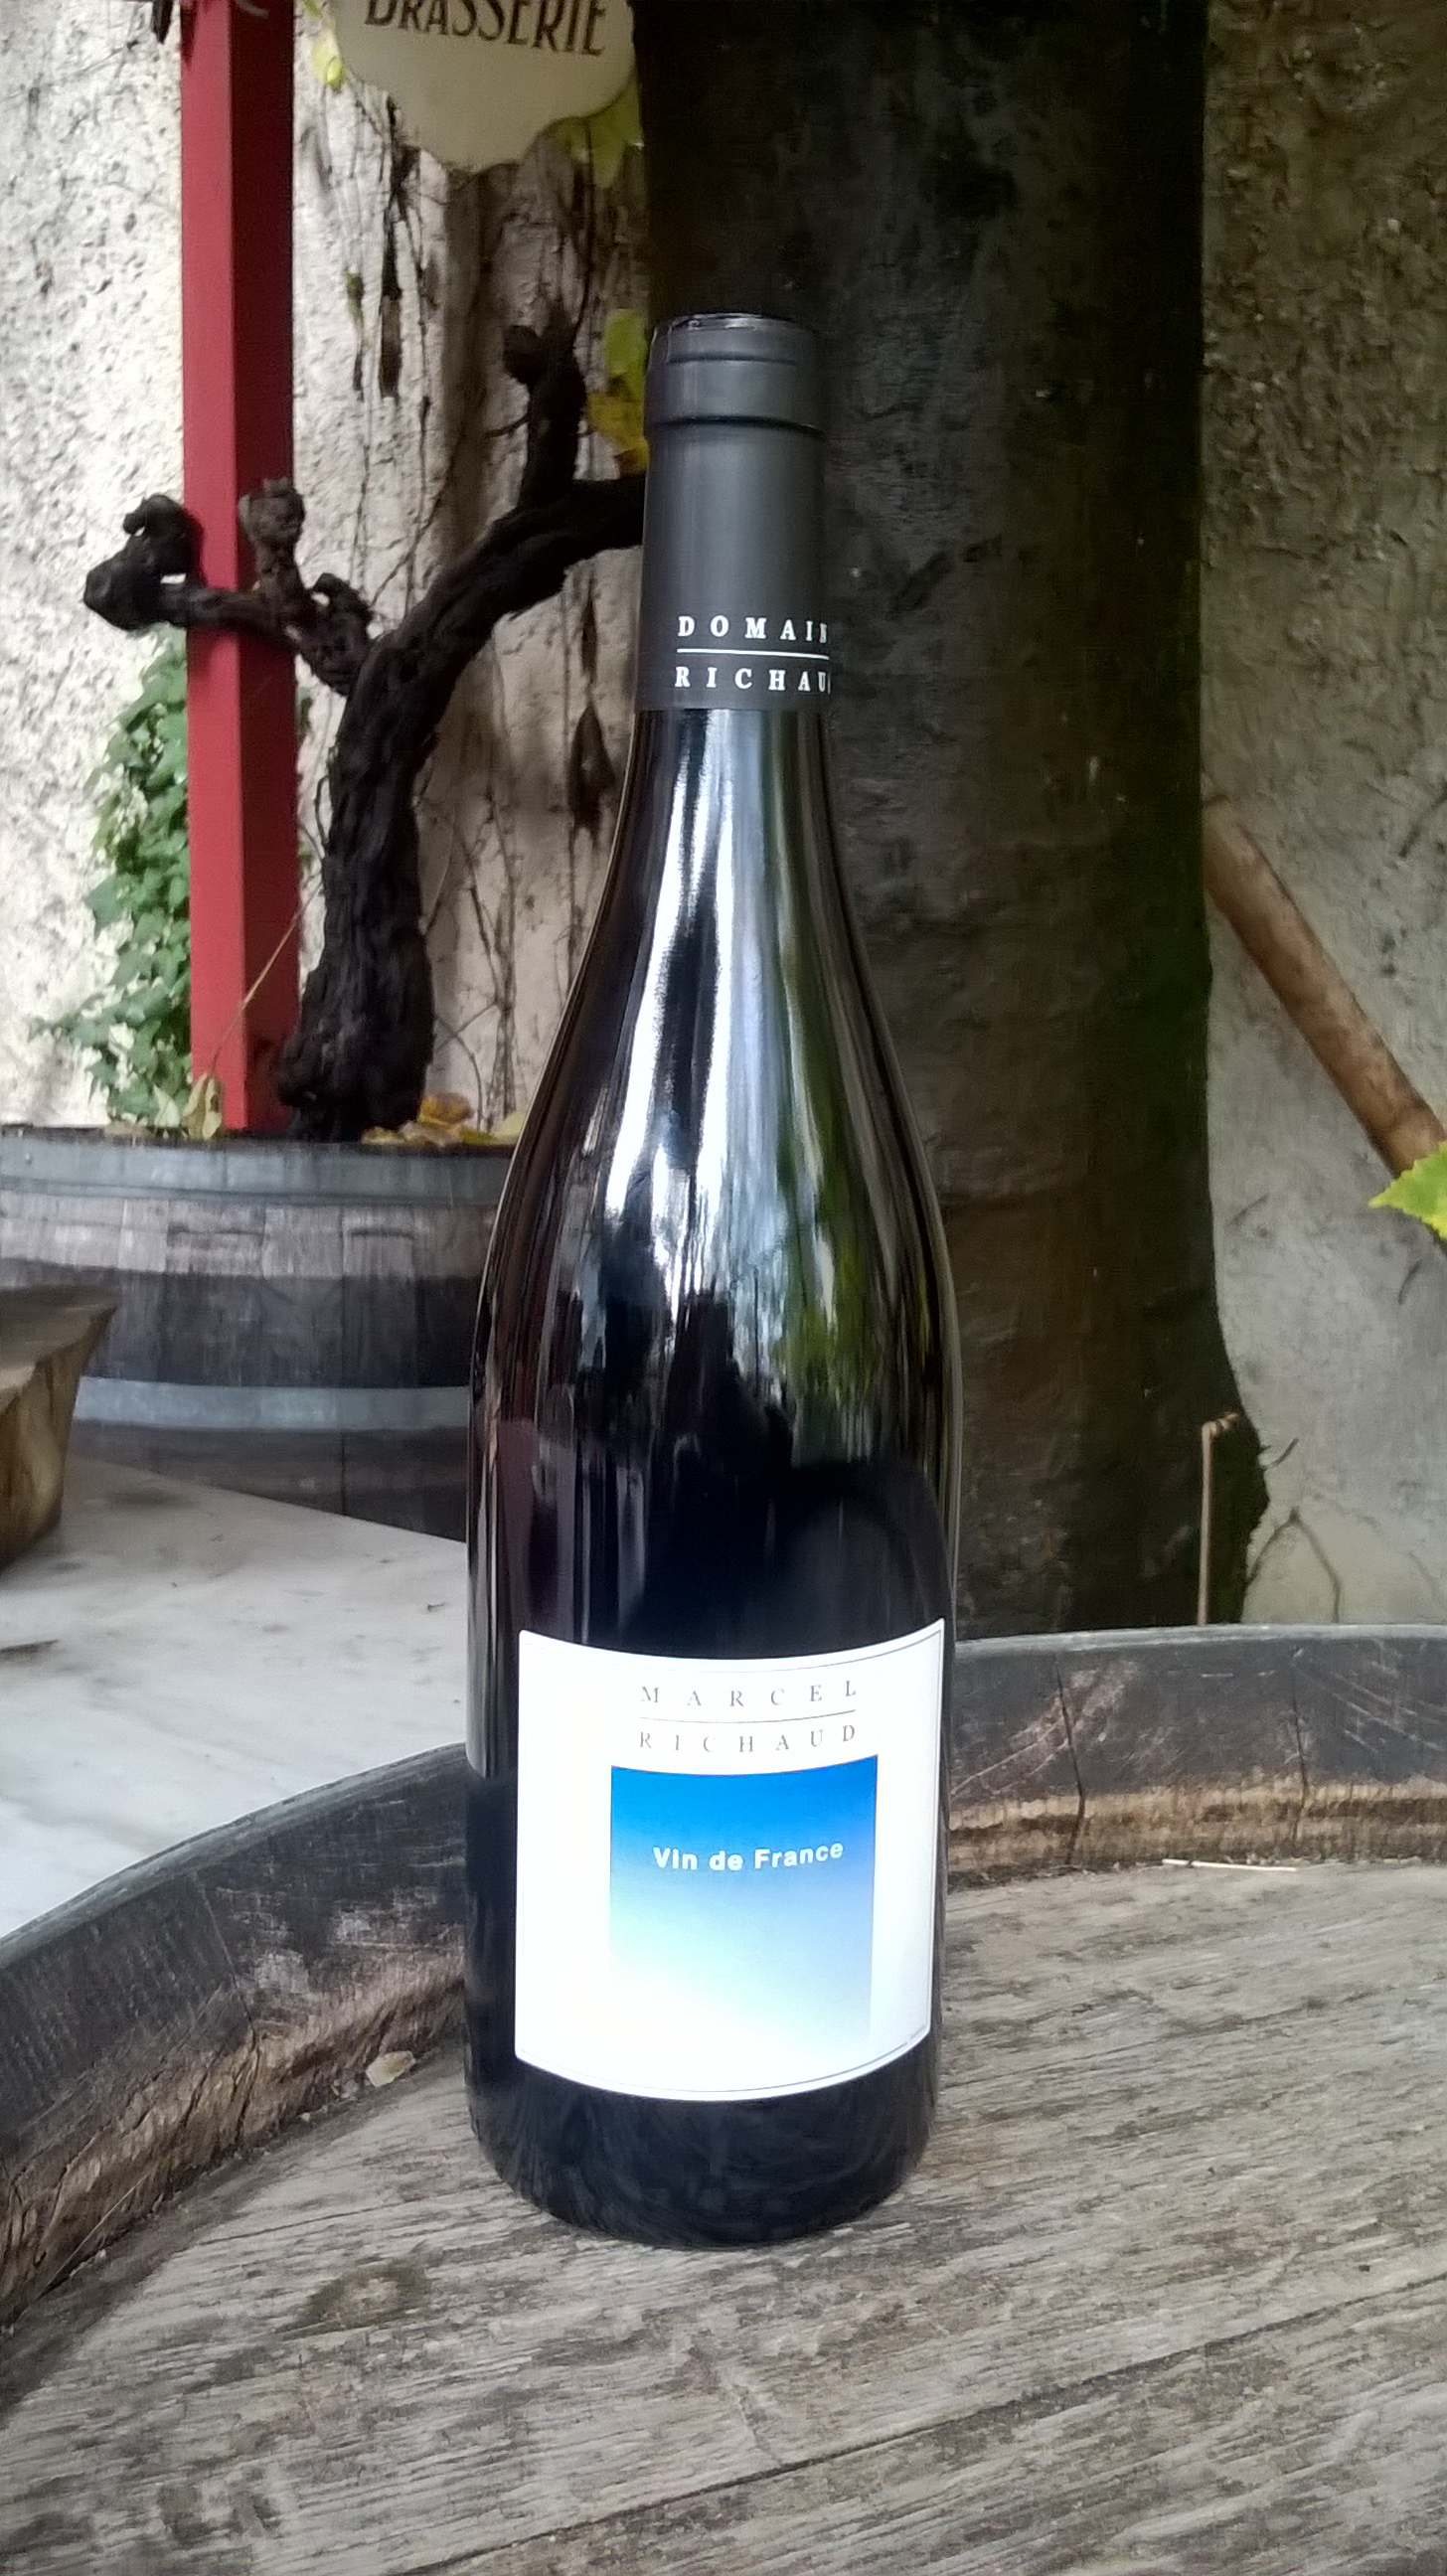 Domaine Richaud, Vin de France 2015